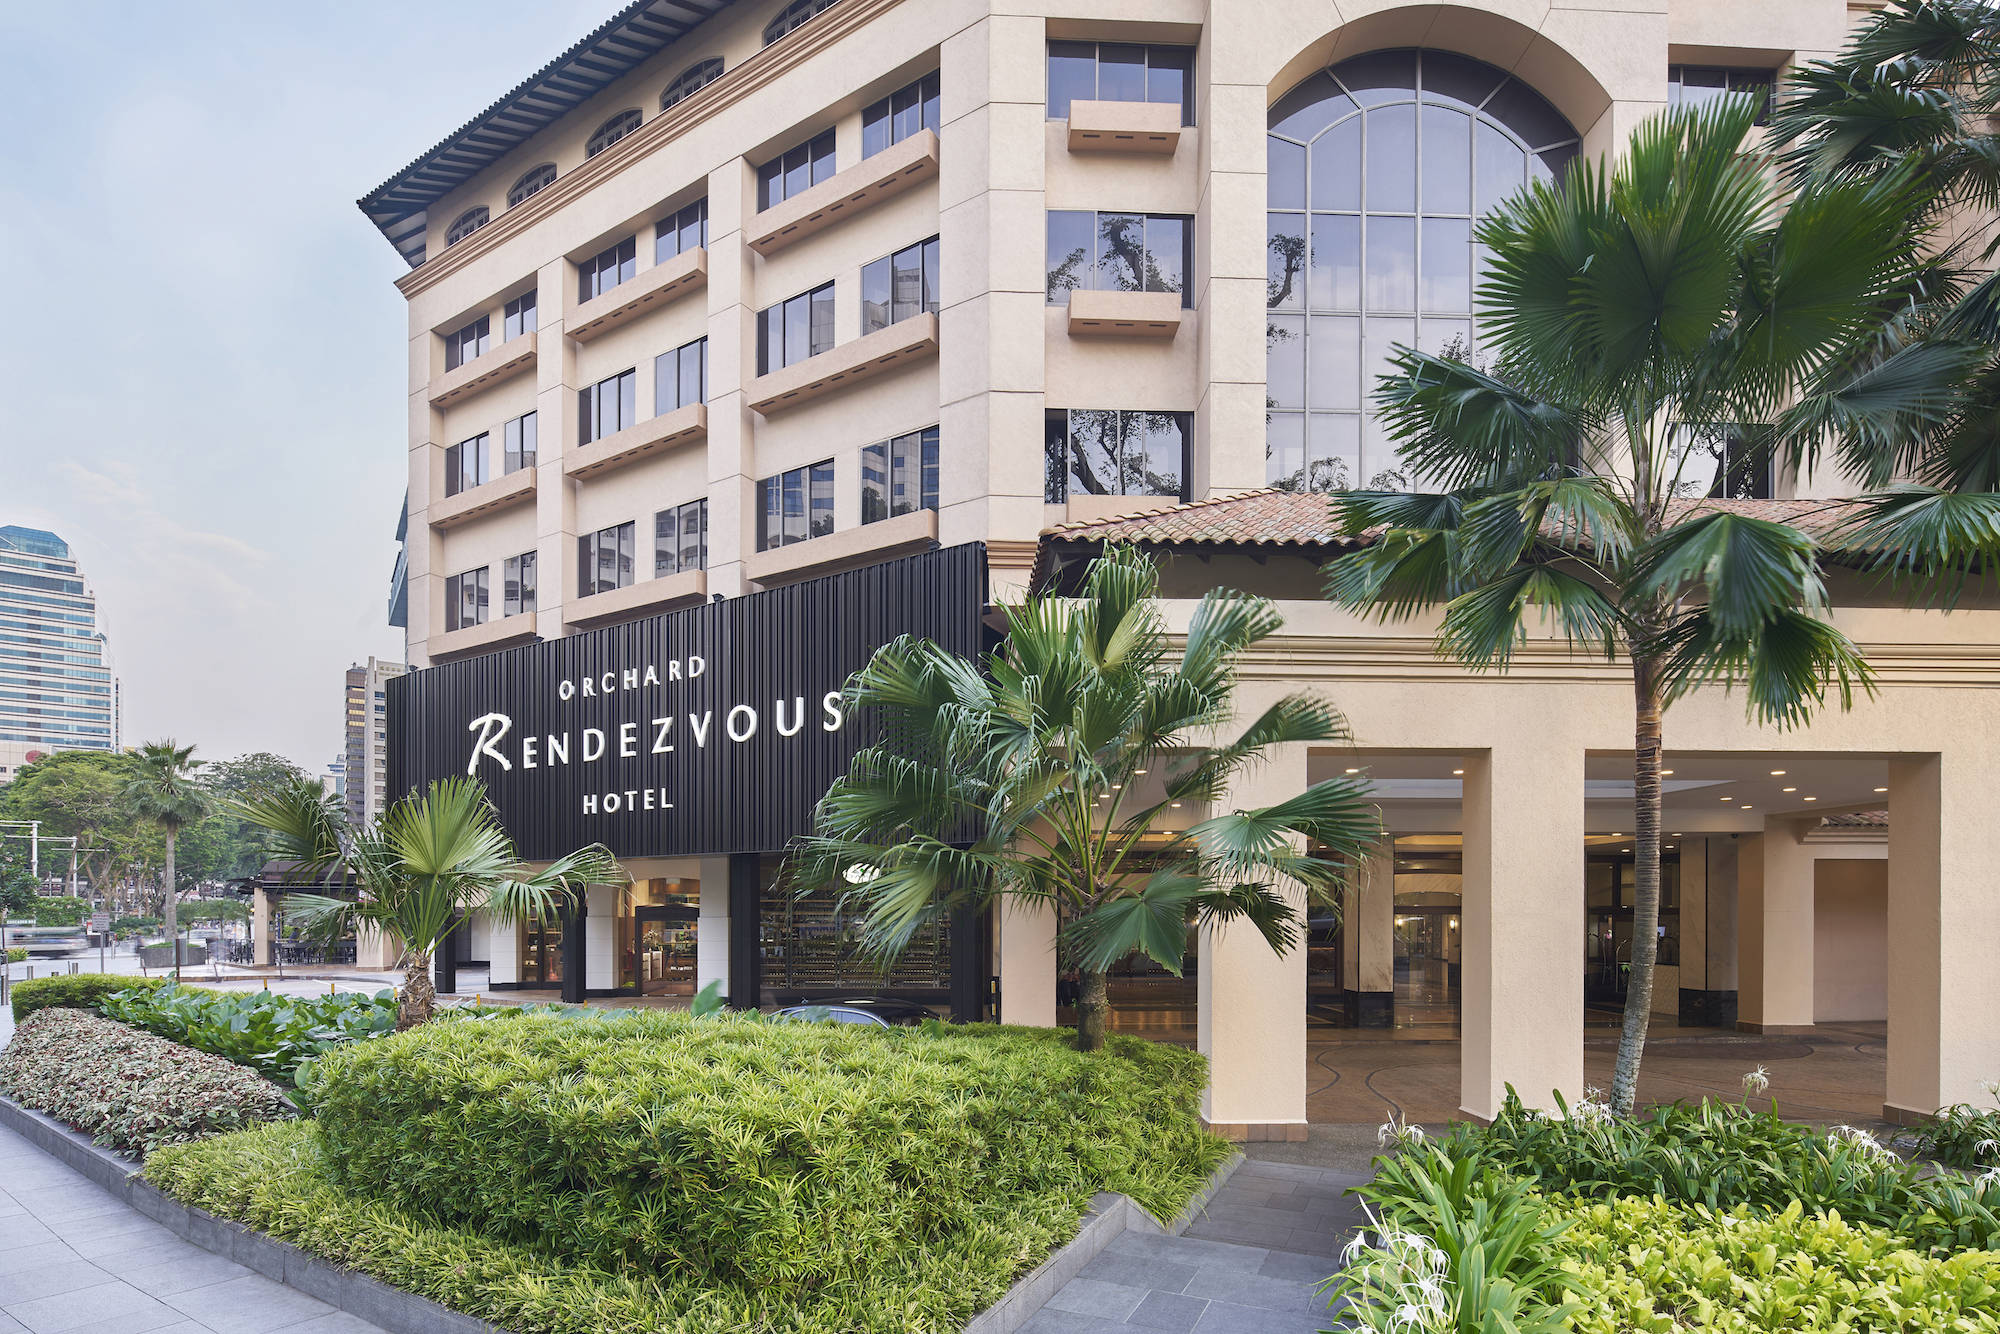 Family comes first at Orchard Rendezvous Hotel